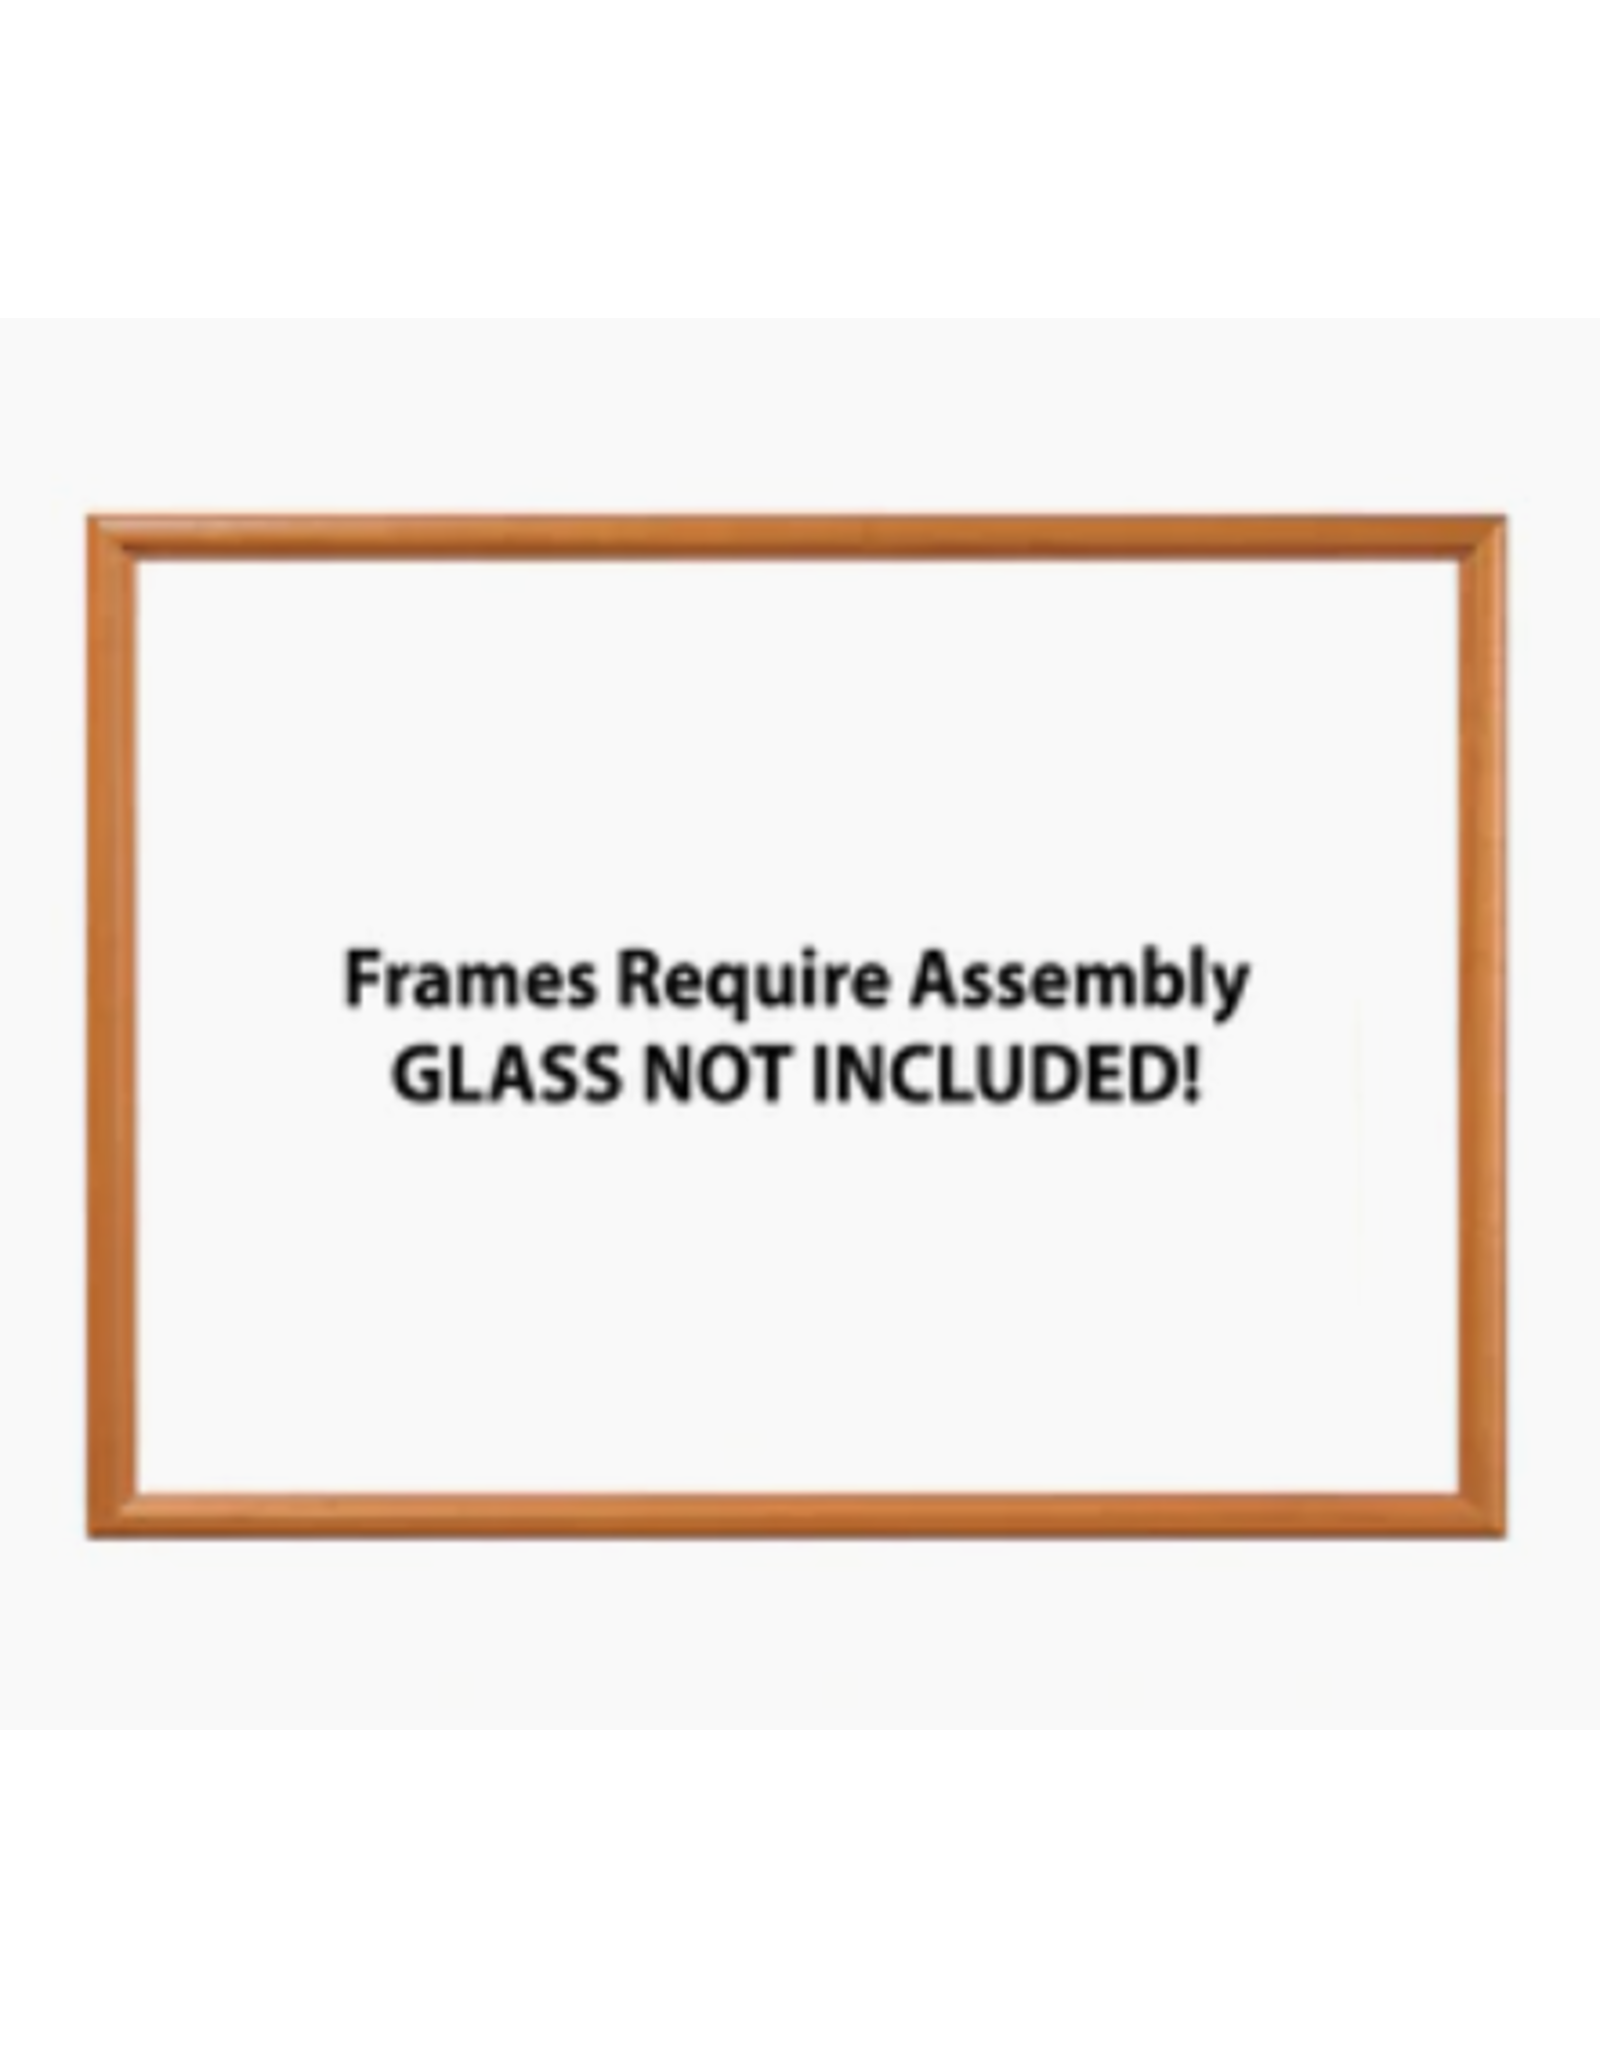 "MasterPieces 1000pc 19.25"" x 26.75"" Wood Puzzle Frame"